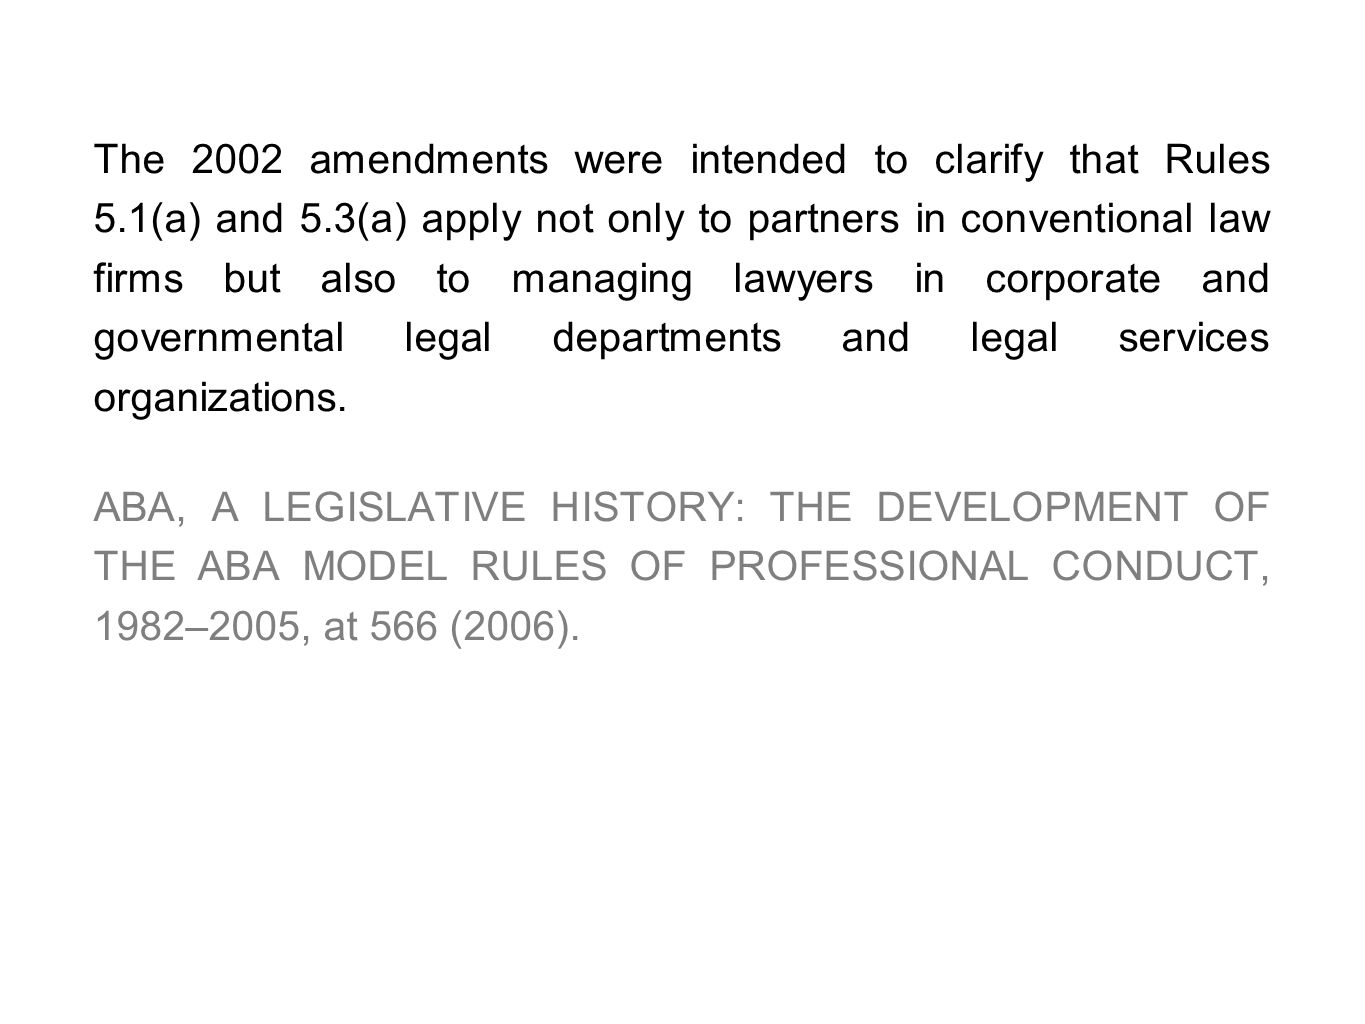 The 2002 amendments were intended to clarify that Rules 5. 1(a) and 5